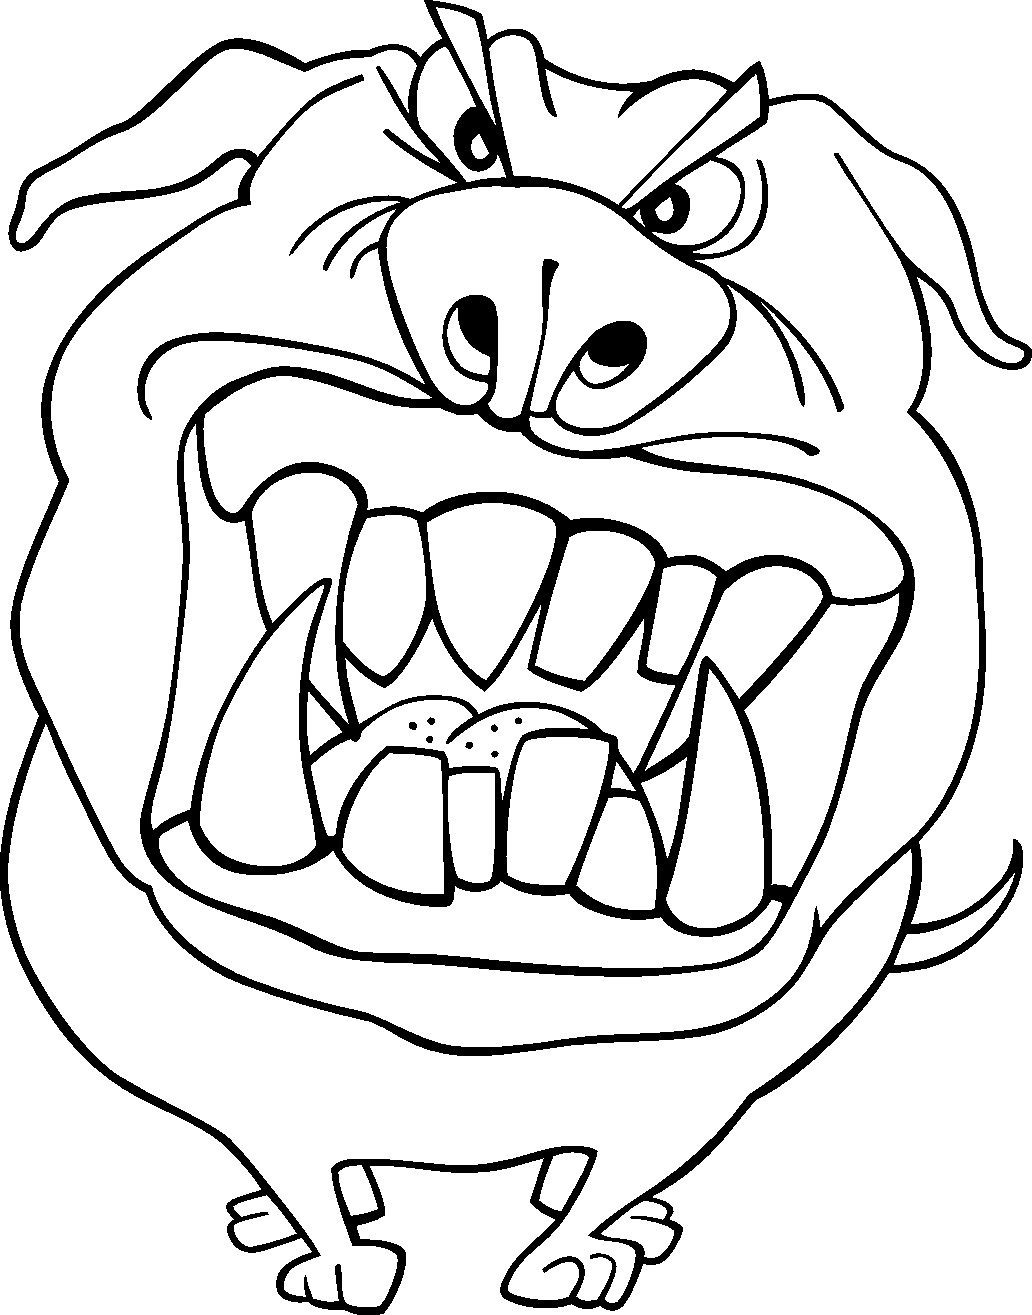 1032x1315 Free Printable Funny Coloring Pages For Kids